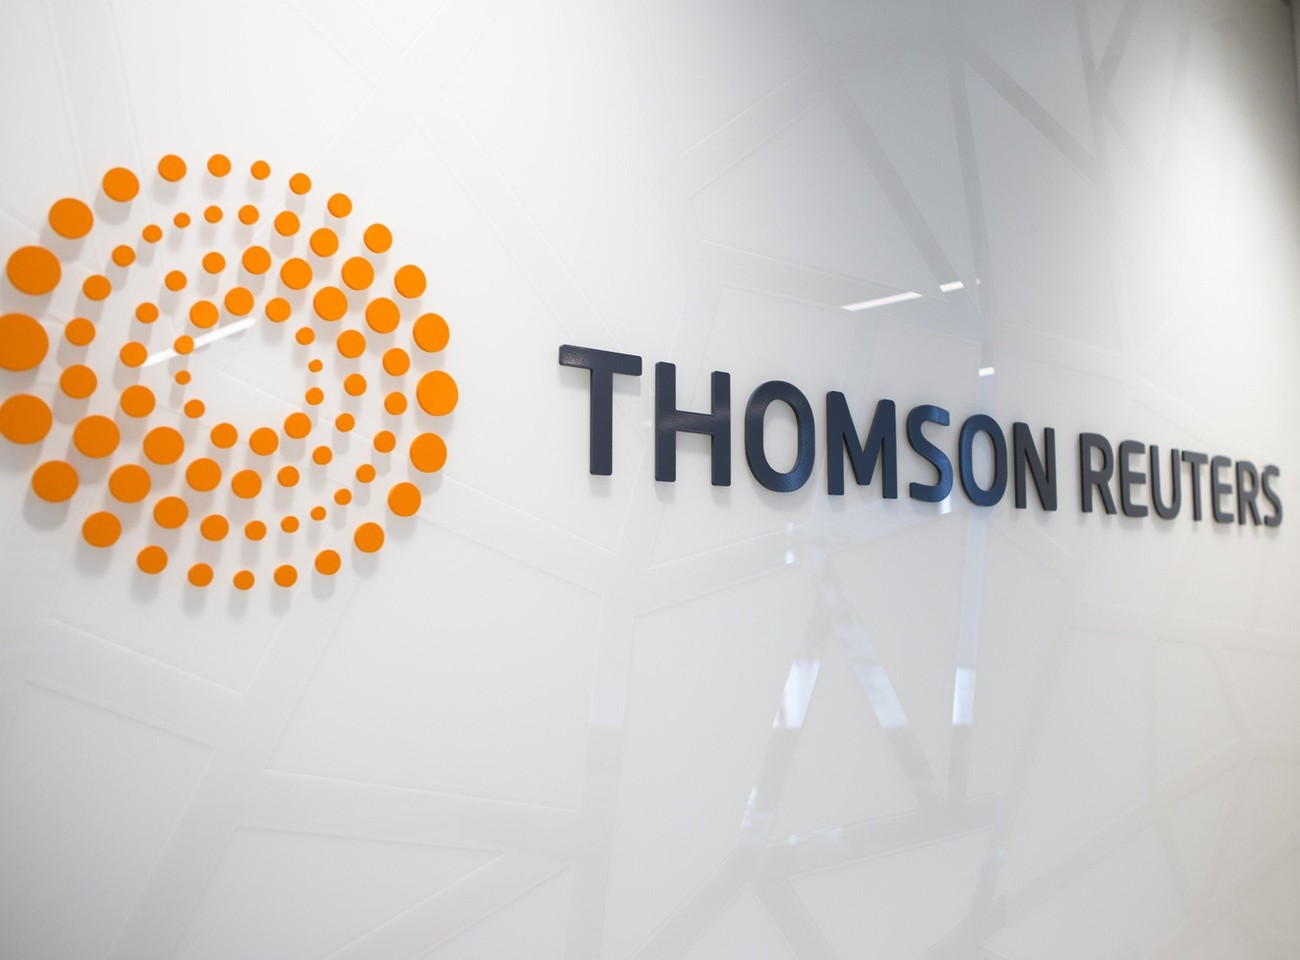 Thomson Reuters Careers